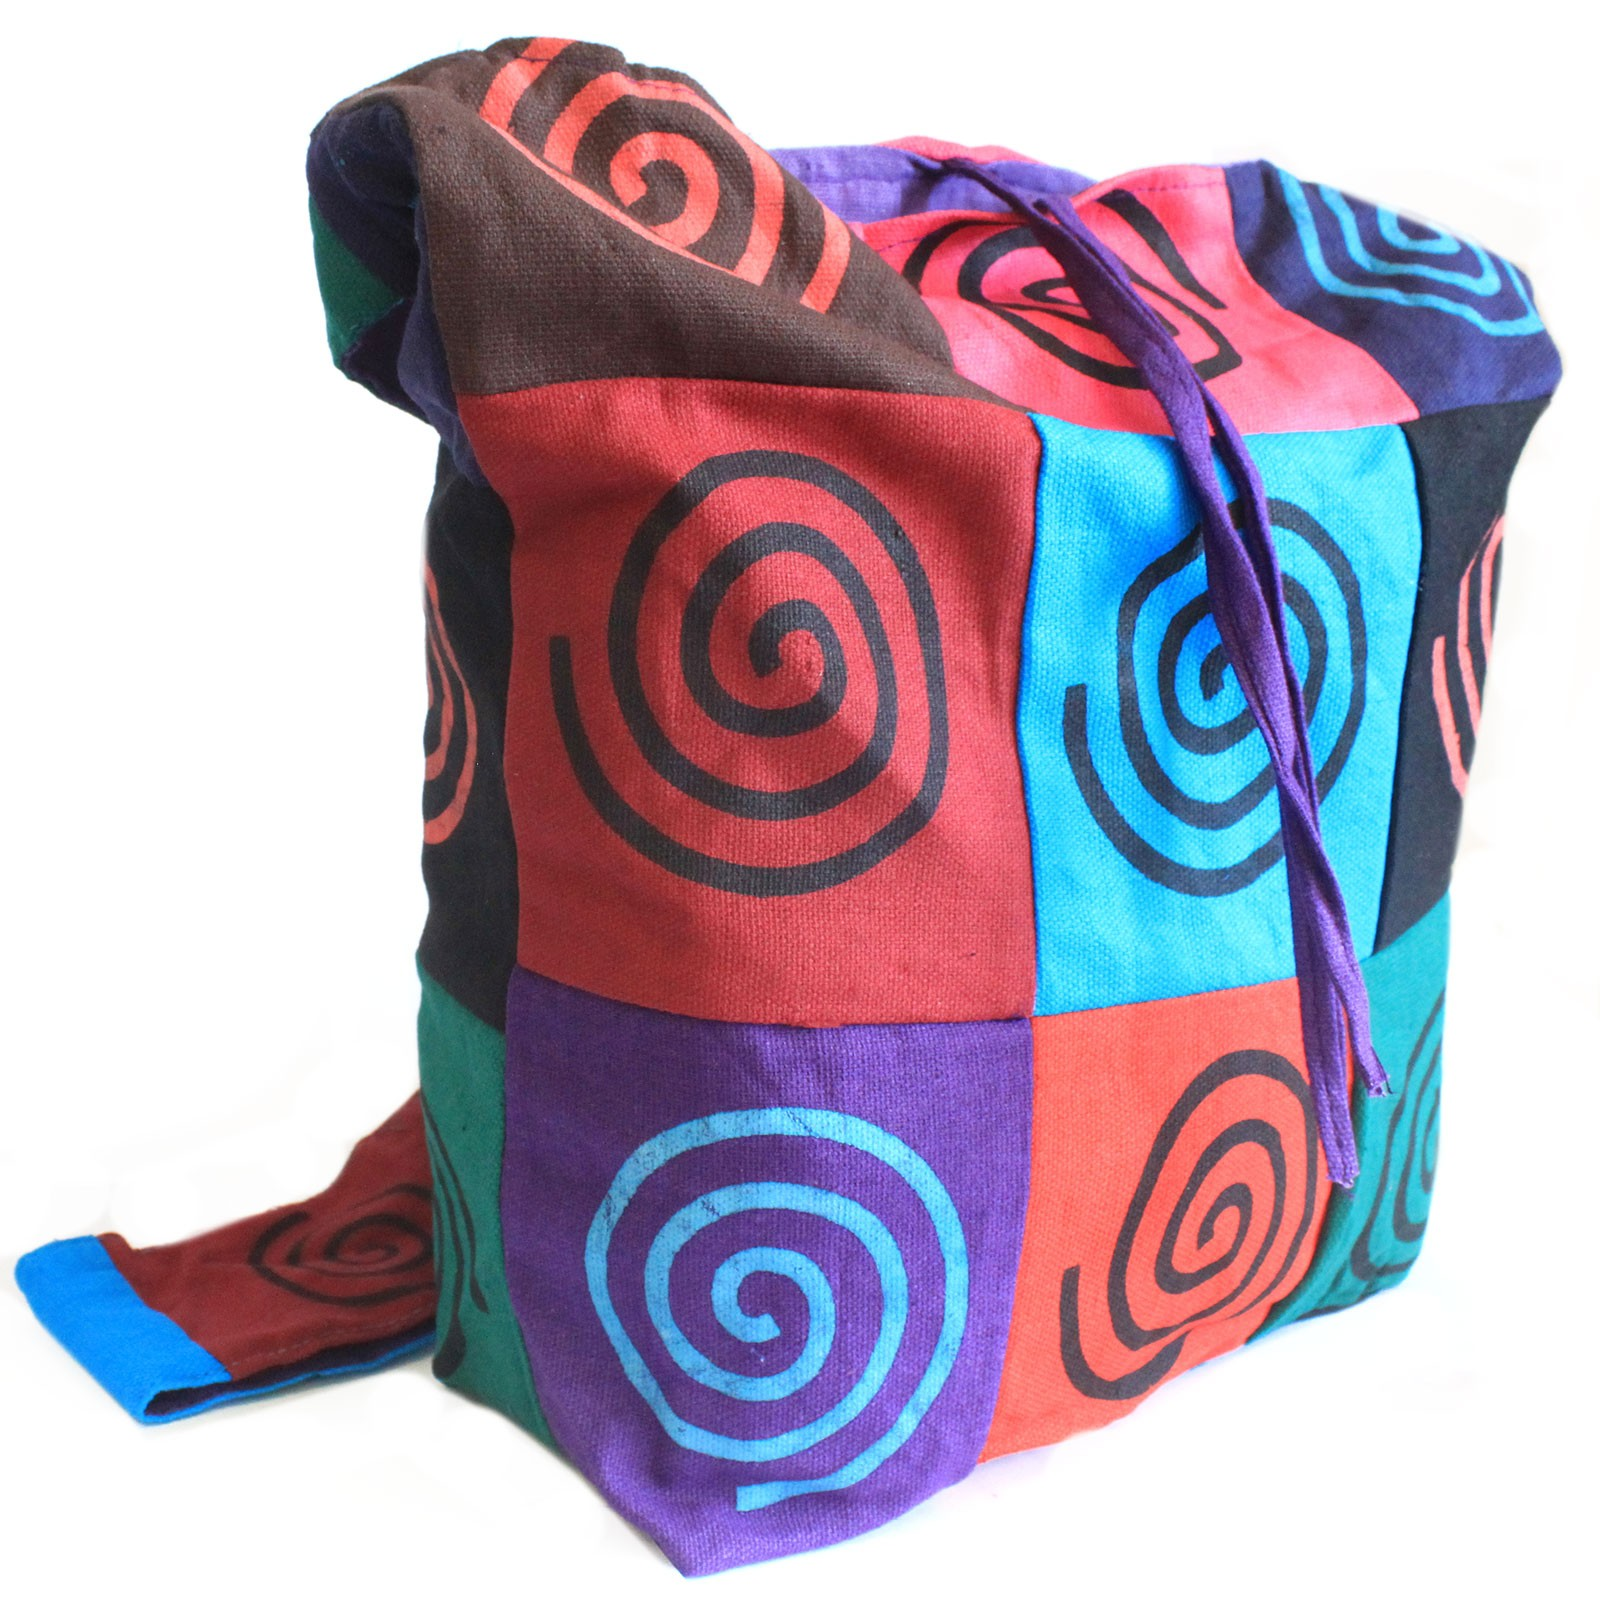 Cotton Patch Sling Bags Spiral